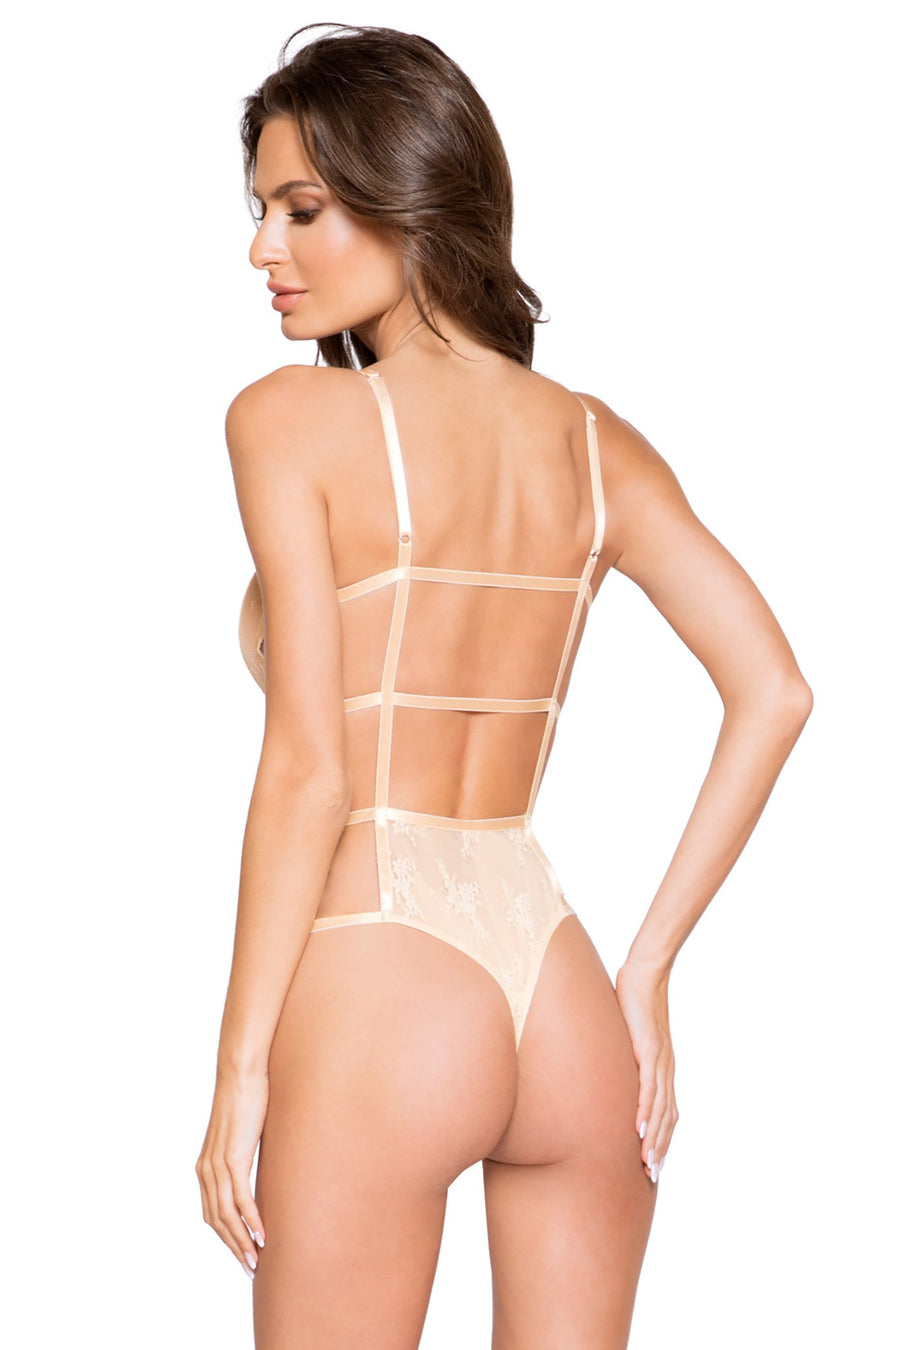 a96133cbcef Classic Full Front Cover Lace Teddy with Back Strap Details - Intimates,  Roma - YourLamode